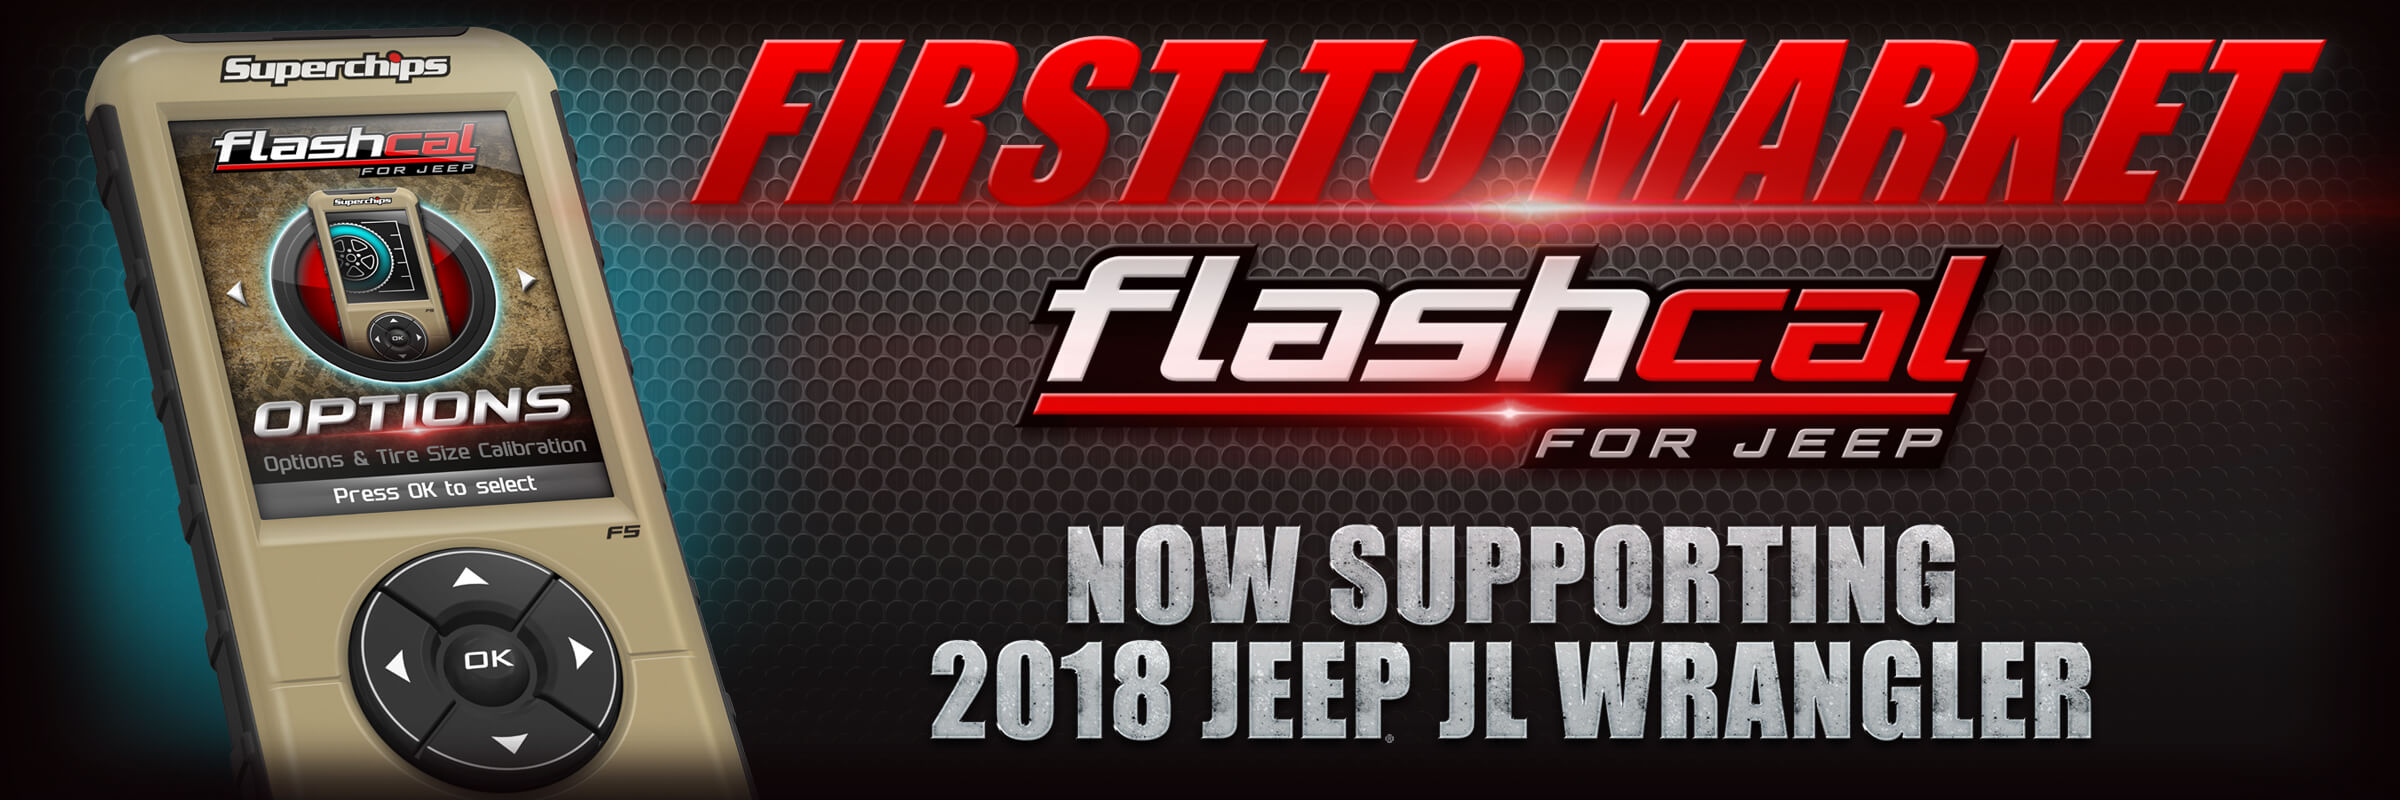 Superchips 2018 Jl Wrangler Flashcal Support Now Available Jeep Headlight Wiring Harness